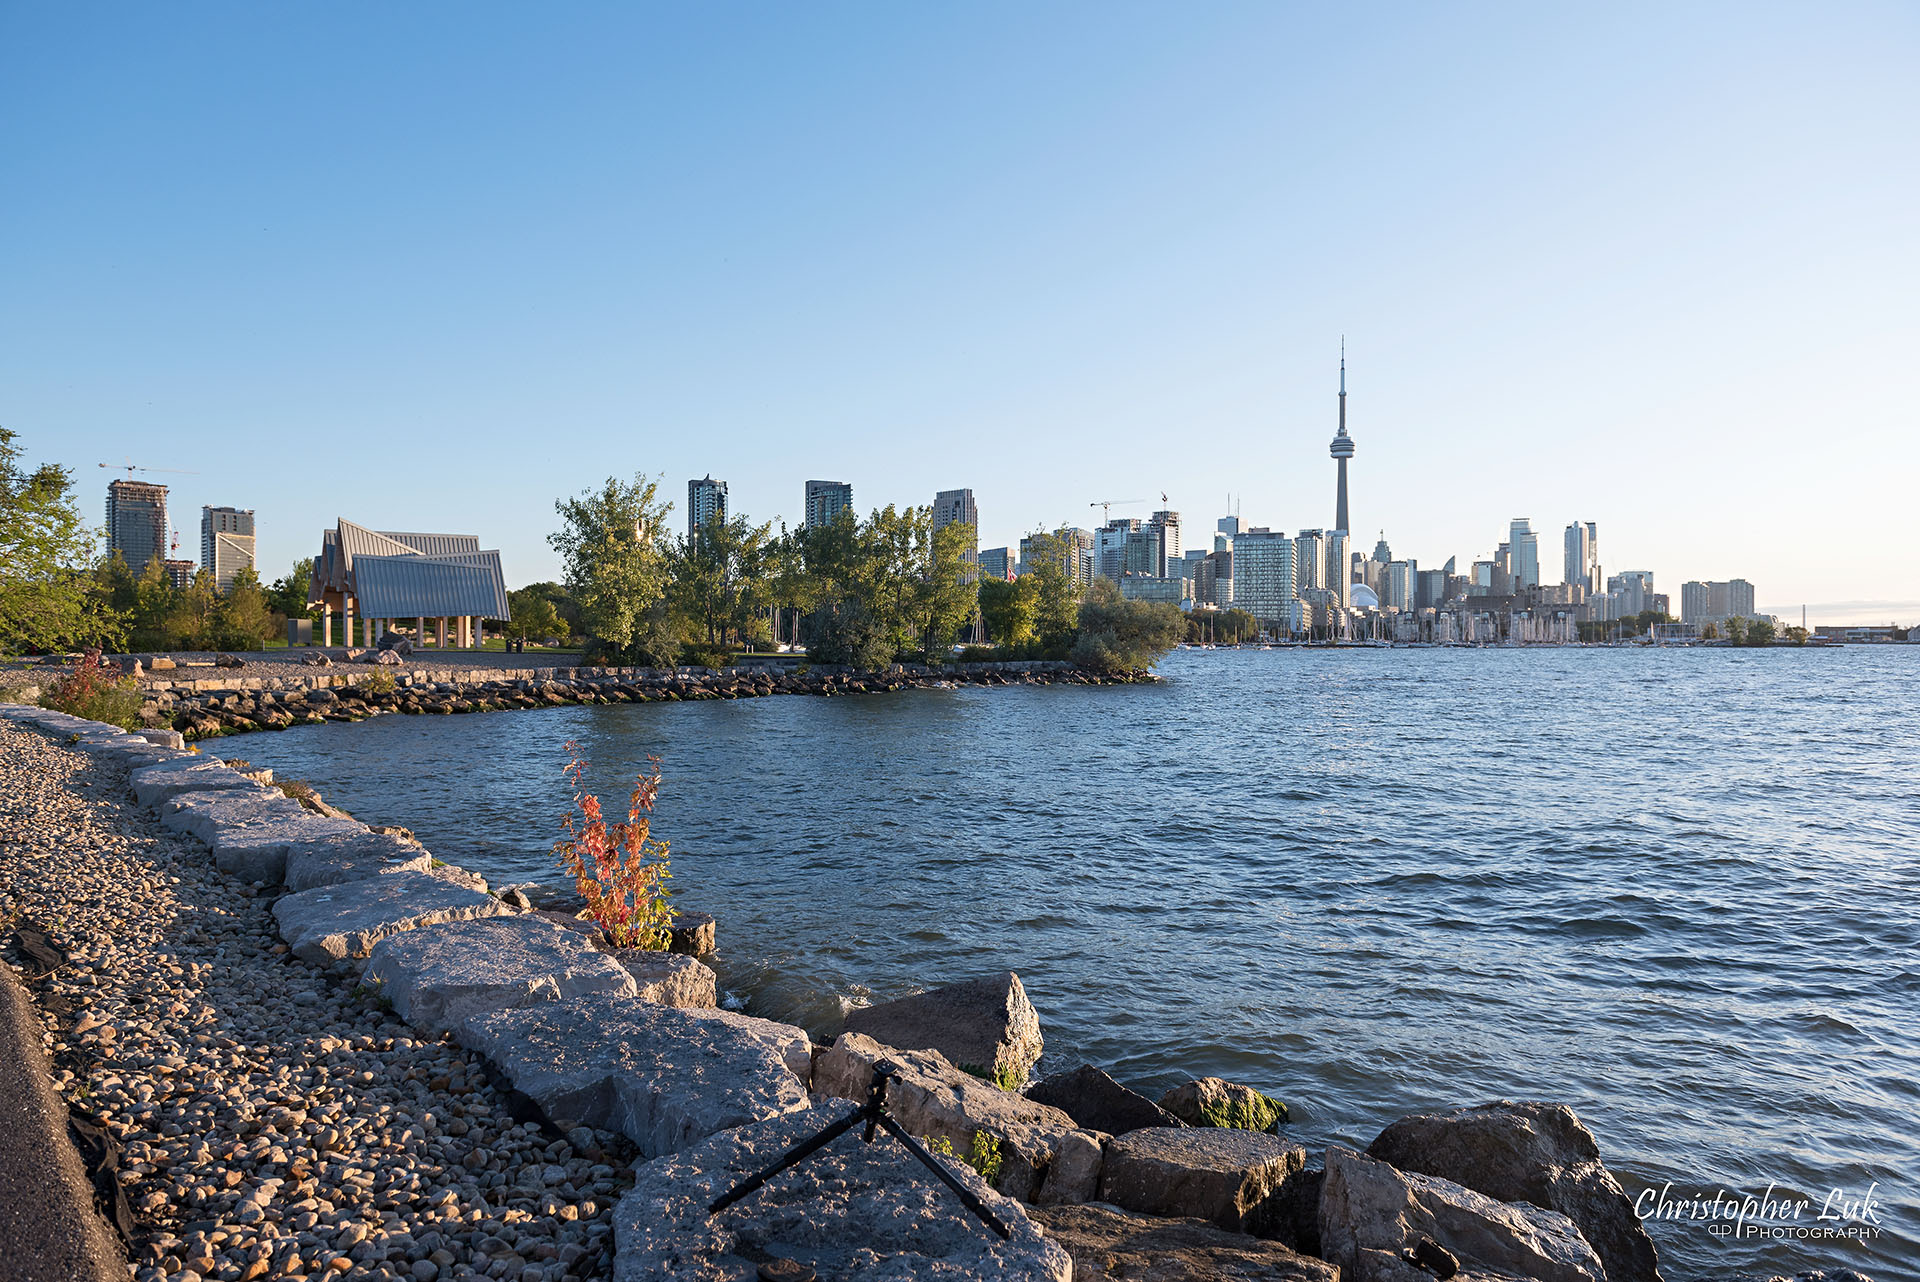 Christopher Luk Trillium Park Ontario Place Waterfront Engagement Session Toronto Wedding Photographer CN Tower Skyline Background Sunrise Wide Landscape Hotel X